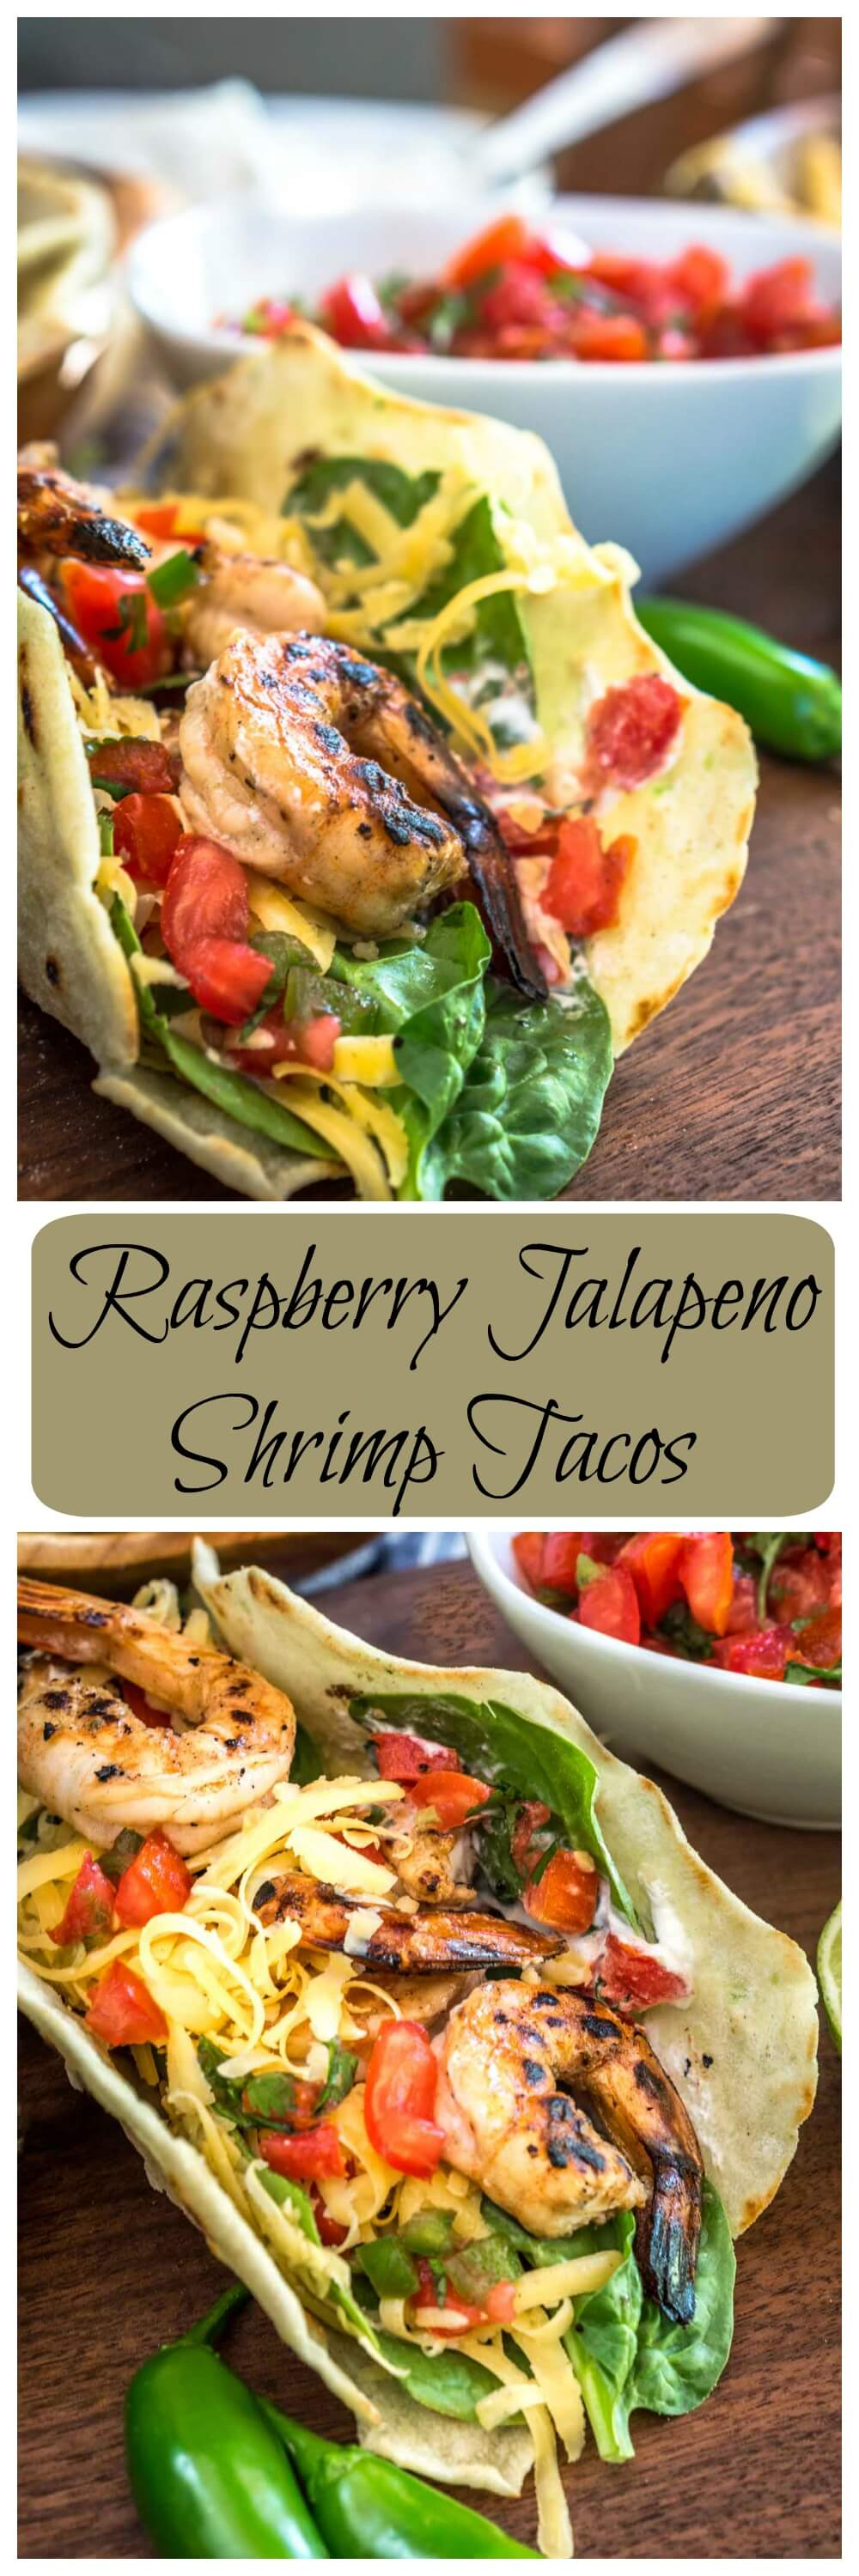 These Raspberry Jalapeno Shrimp Tacos are quick, easy, and absolutely delicious.  There's a hint of sweet followed by a little heat.  Best of all,  they're easy on the waistline. HostessAtHeart.com